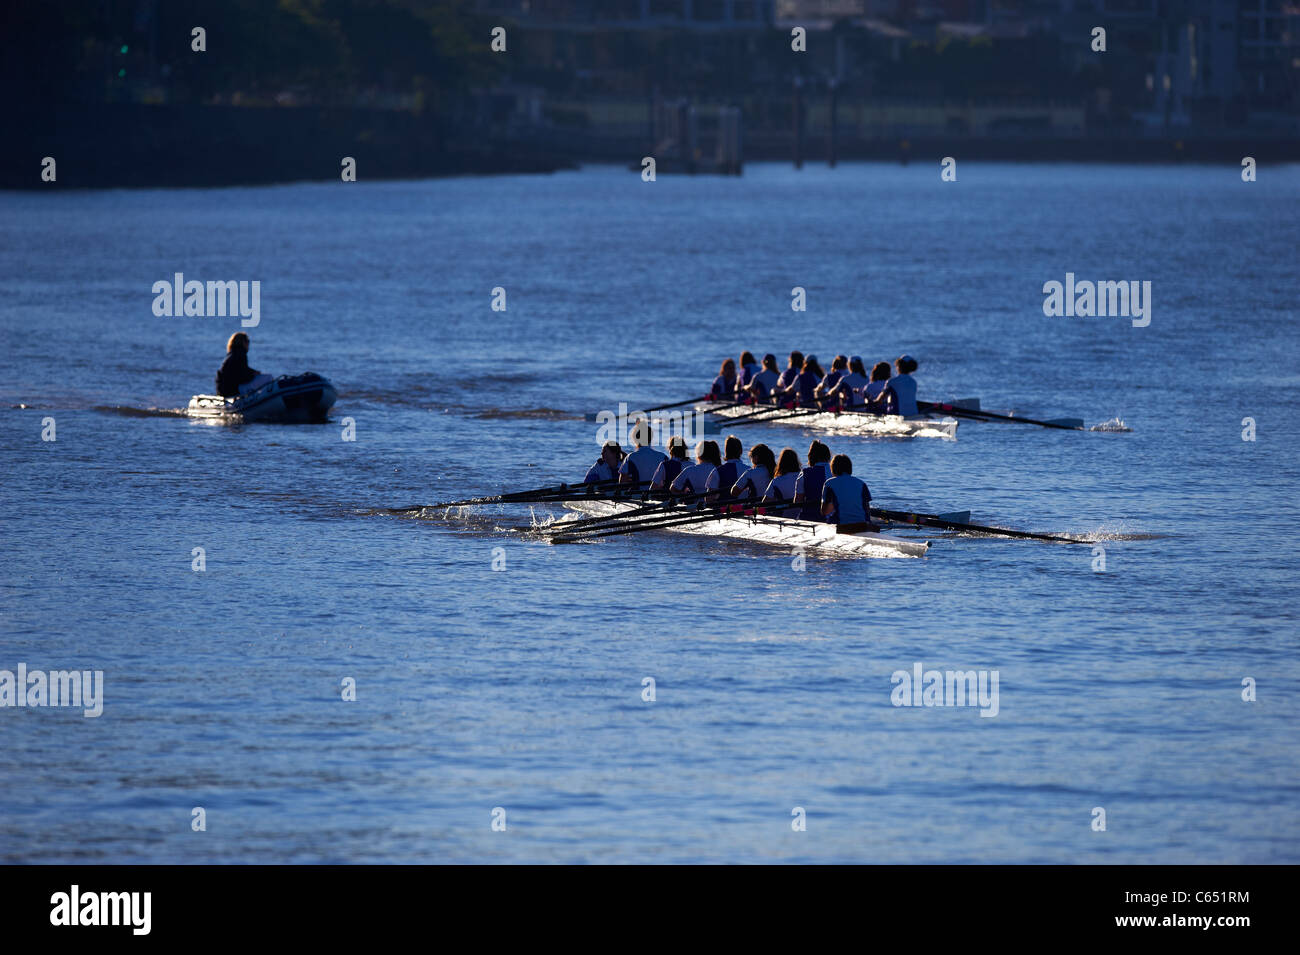 Rowing 8's on the Brisbane River Queensland Australia - Stock Image